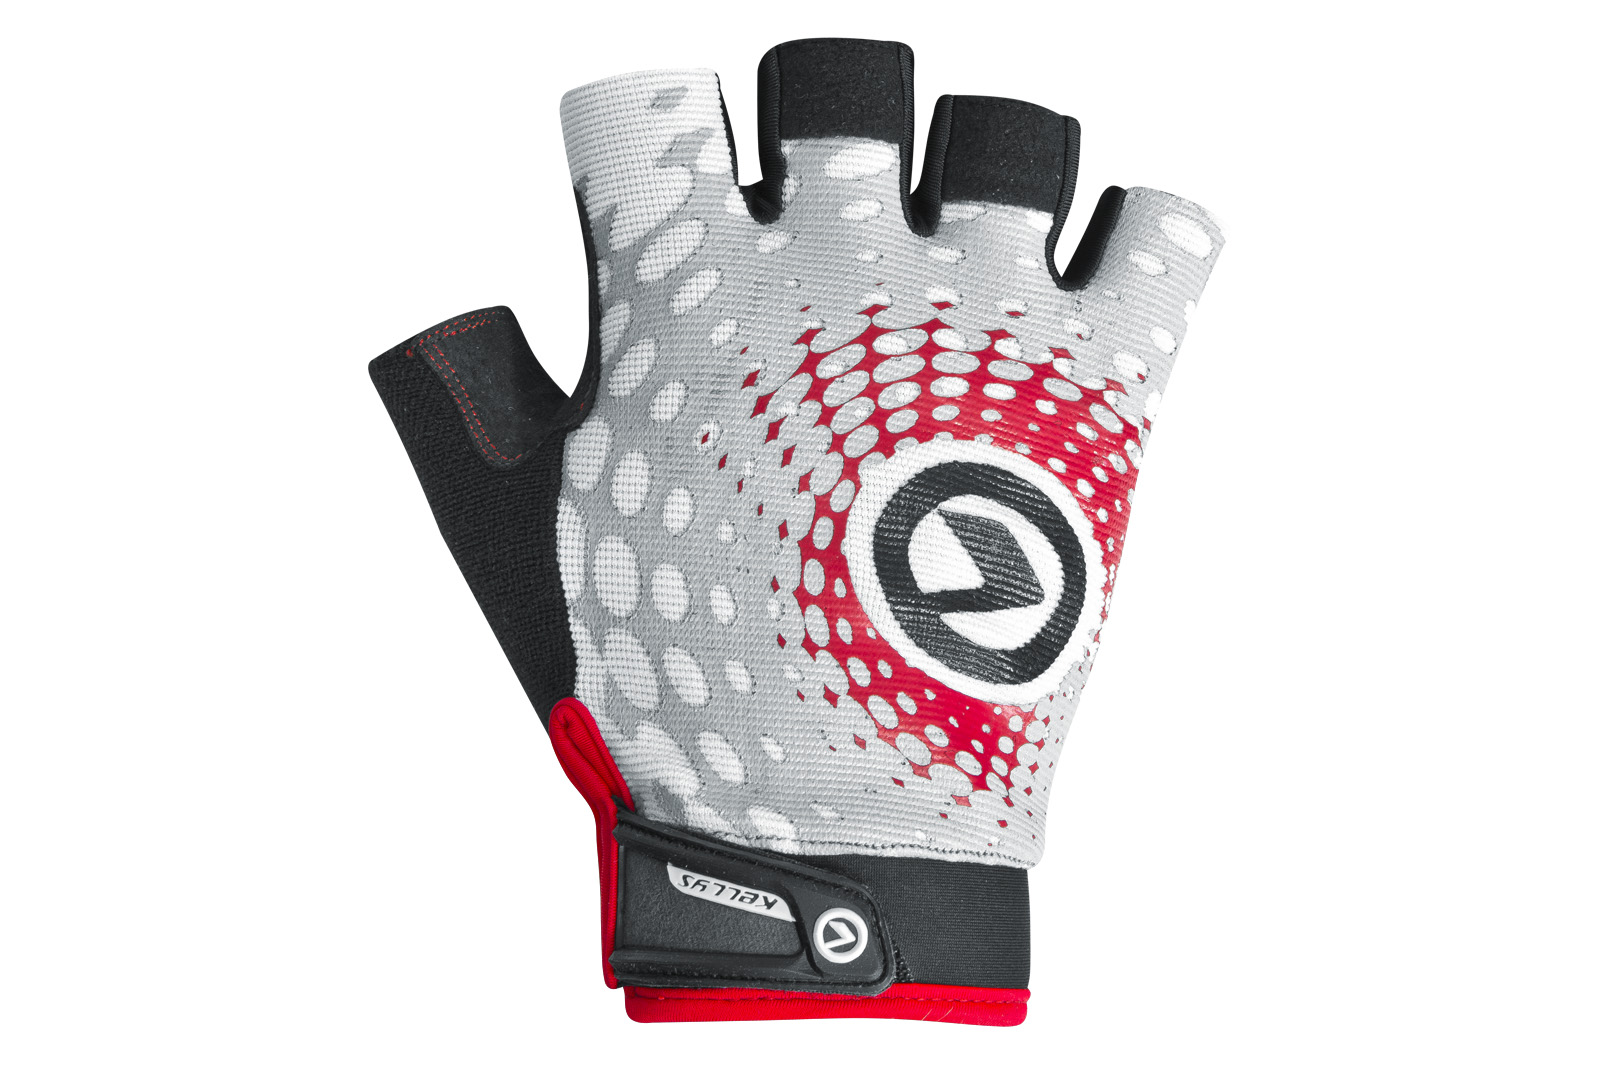 Handschuhe IMPACT short white-grey-red XL - Handschuhe IMPACT short white-grey-red XL